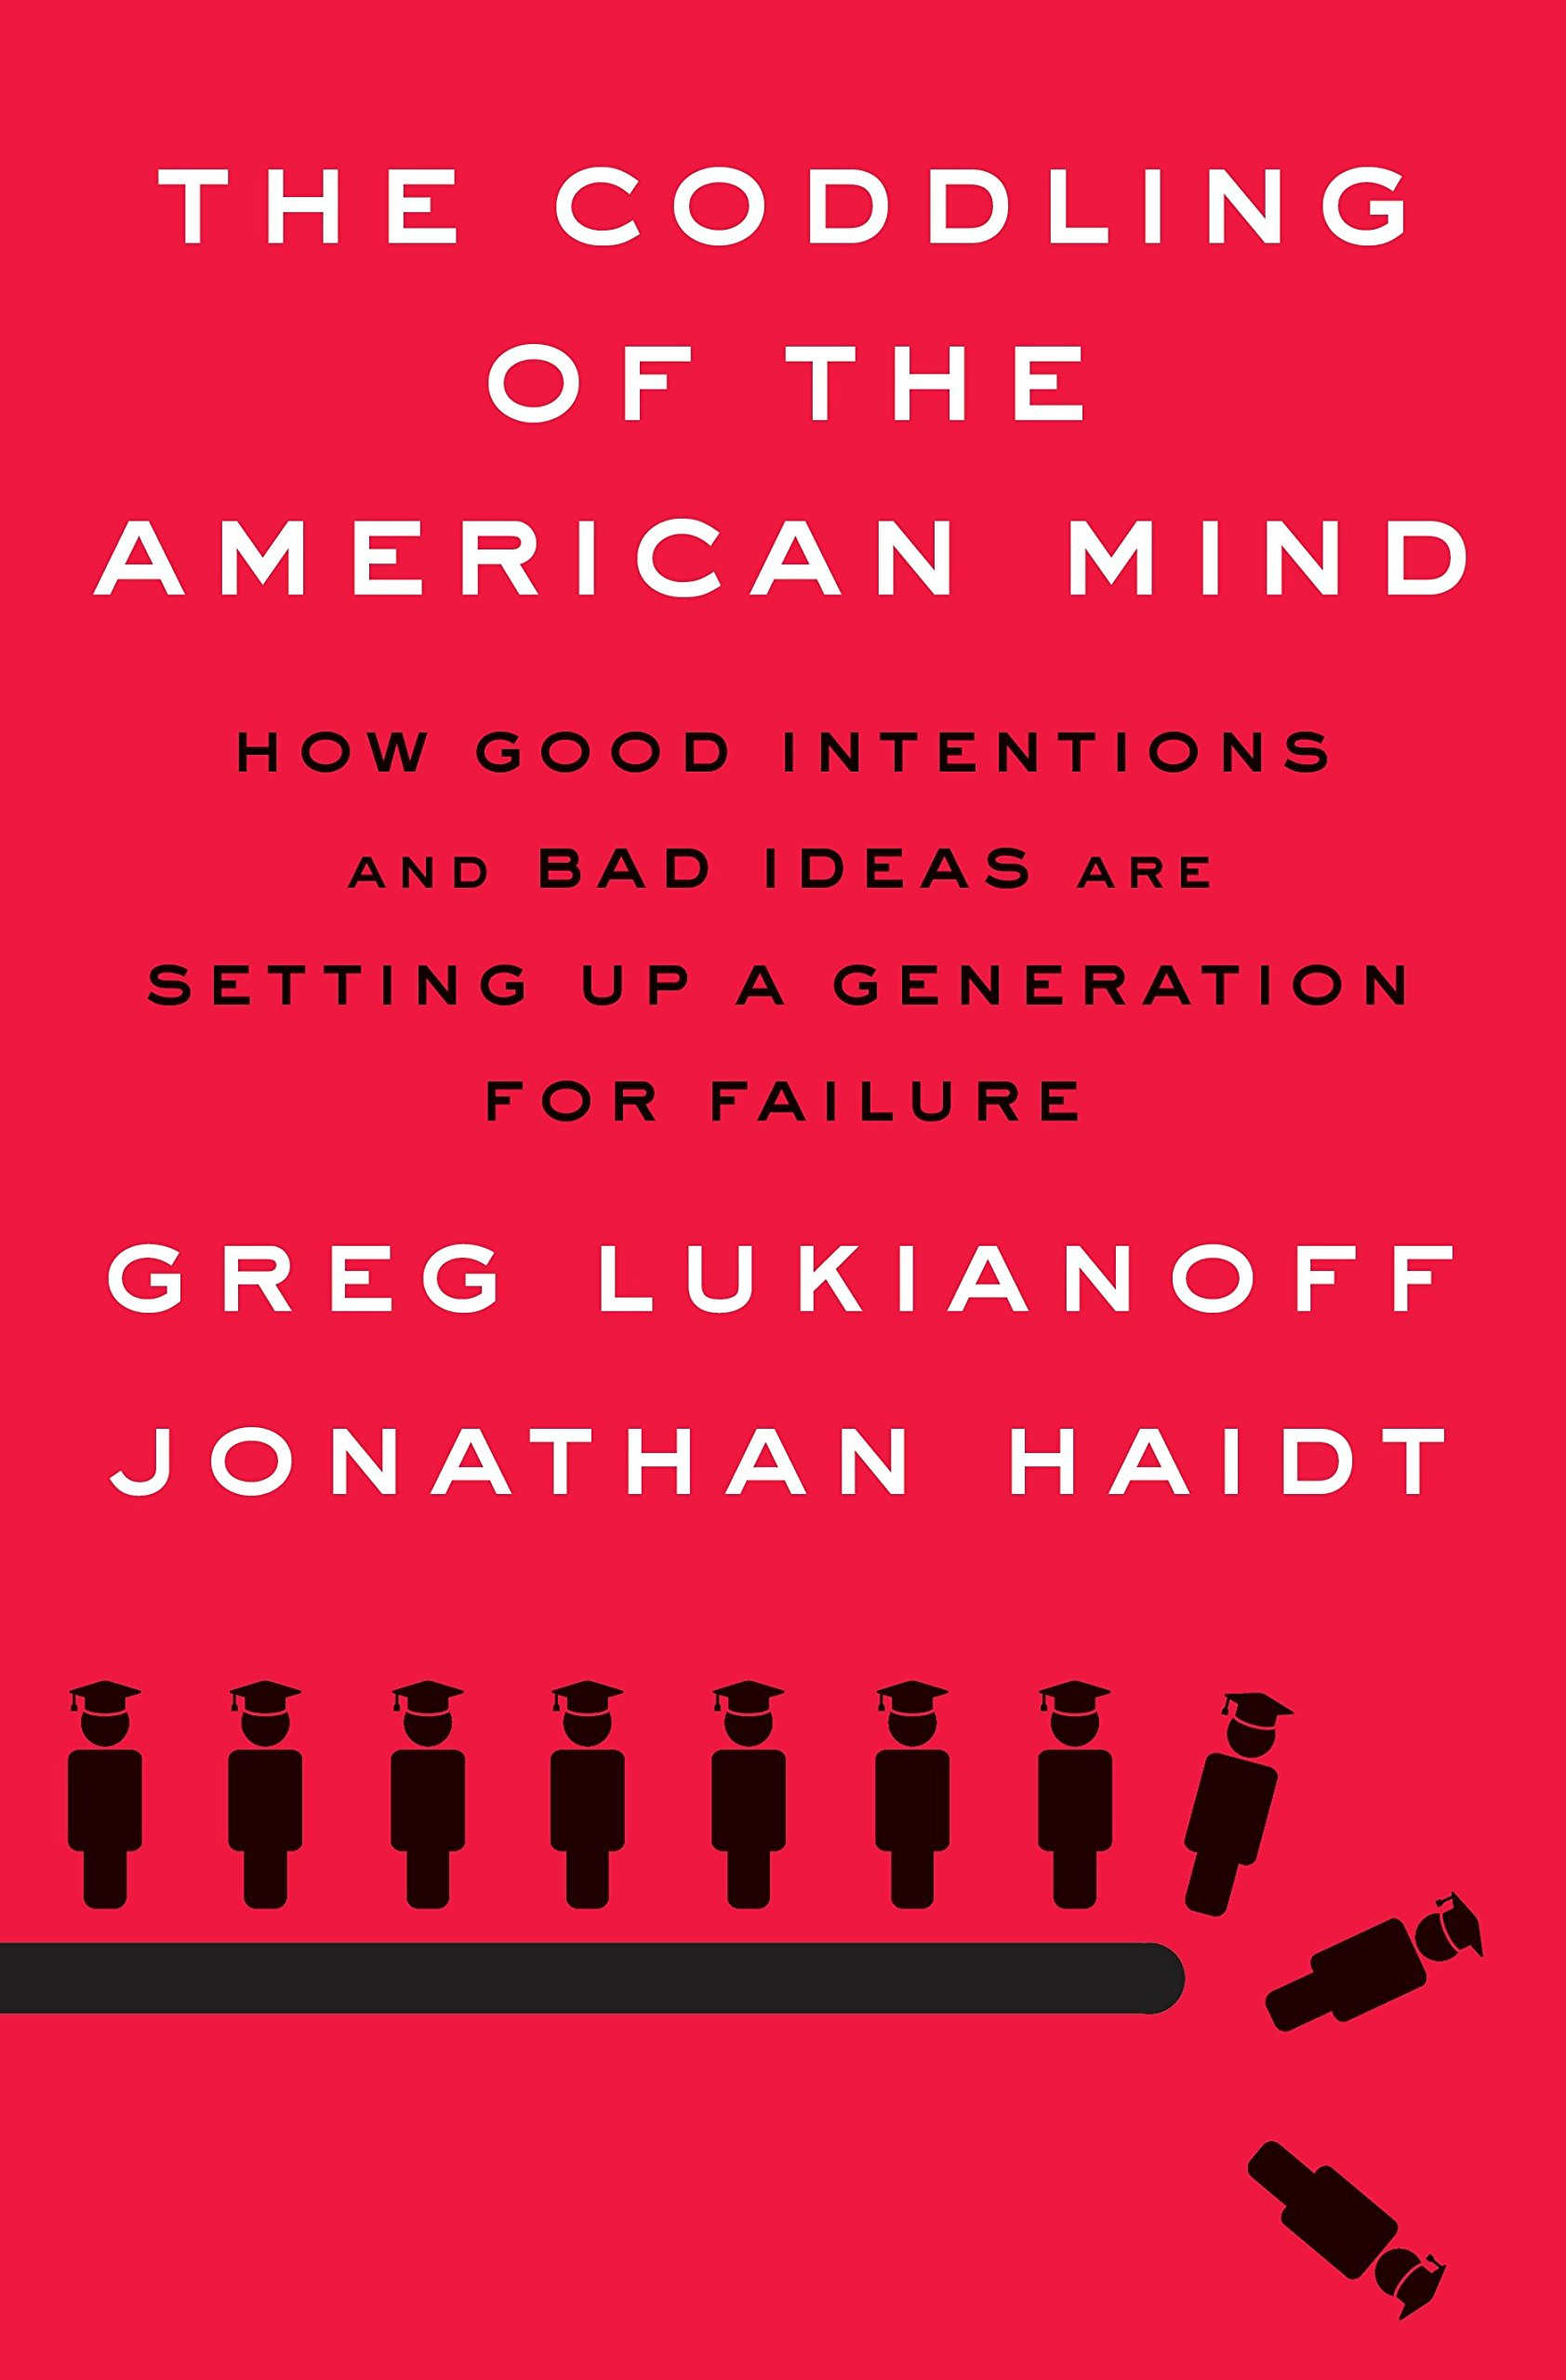 The coddling of the American Mind How good intentions and bad ideas are setting up a generation for failure Greg Lukianoff- Jonathan Haidt